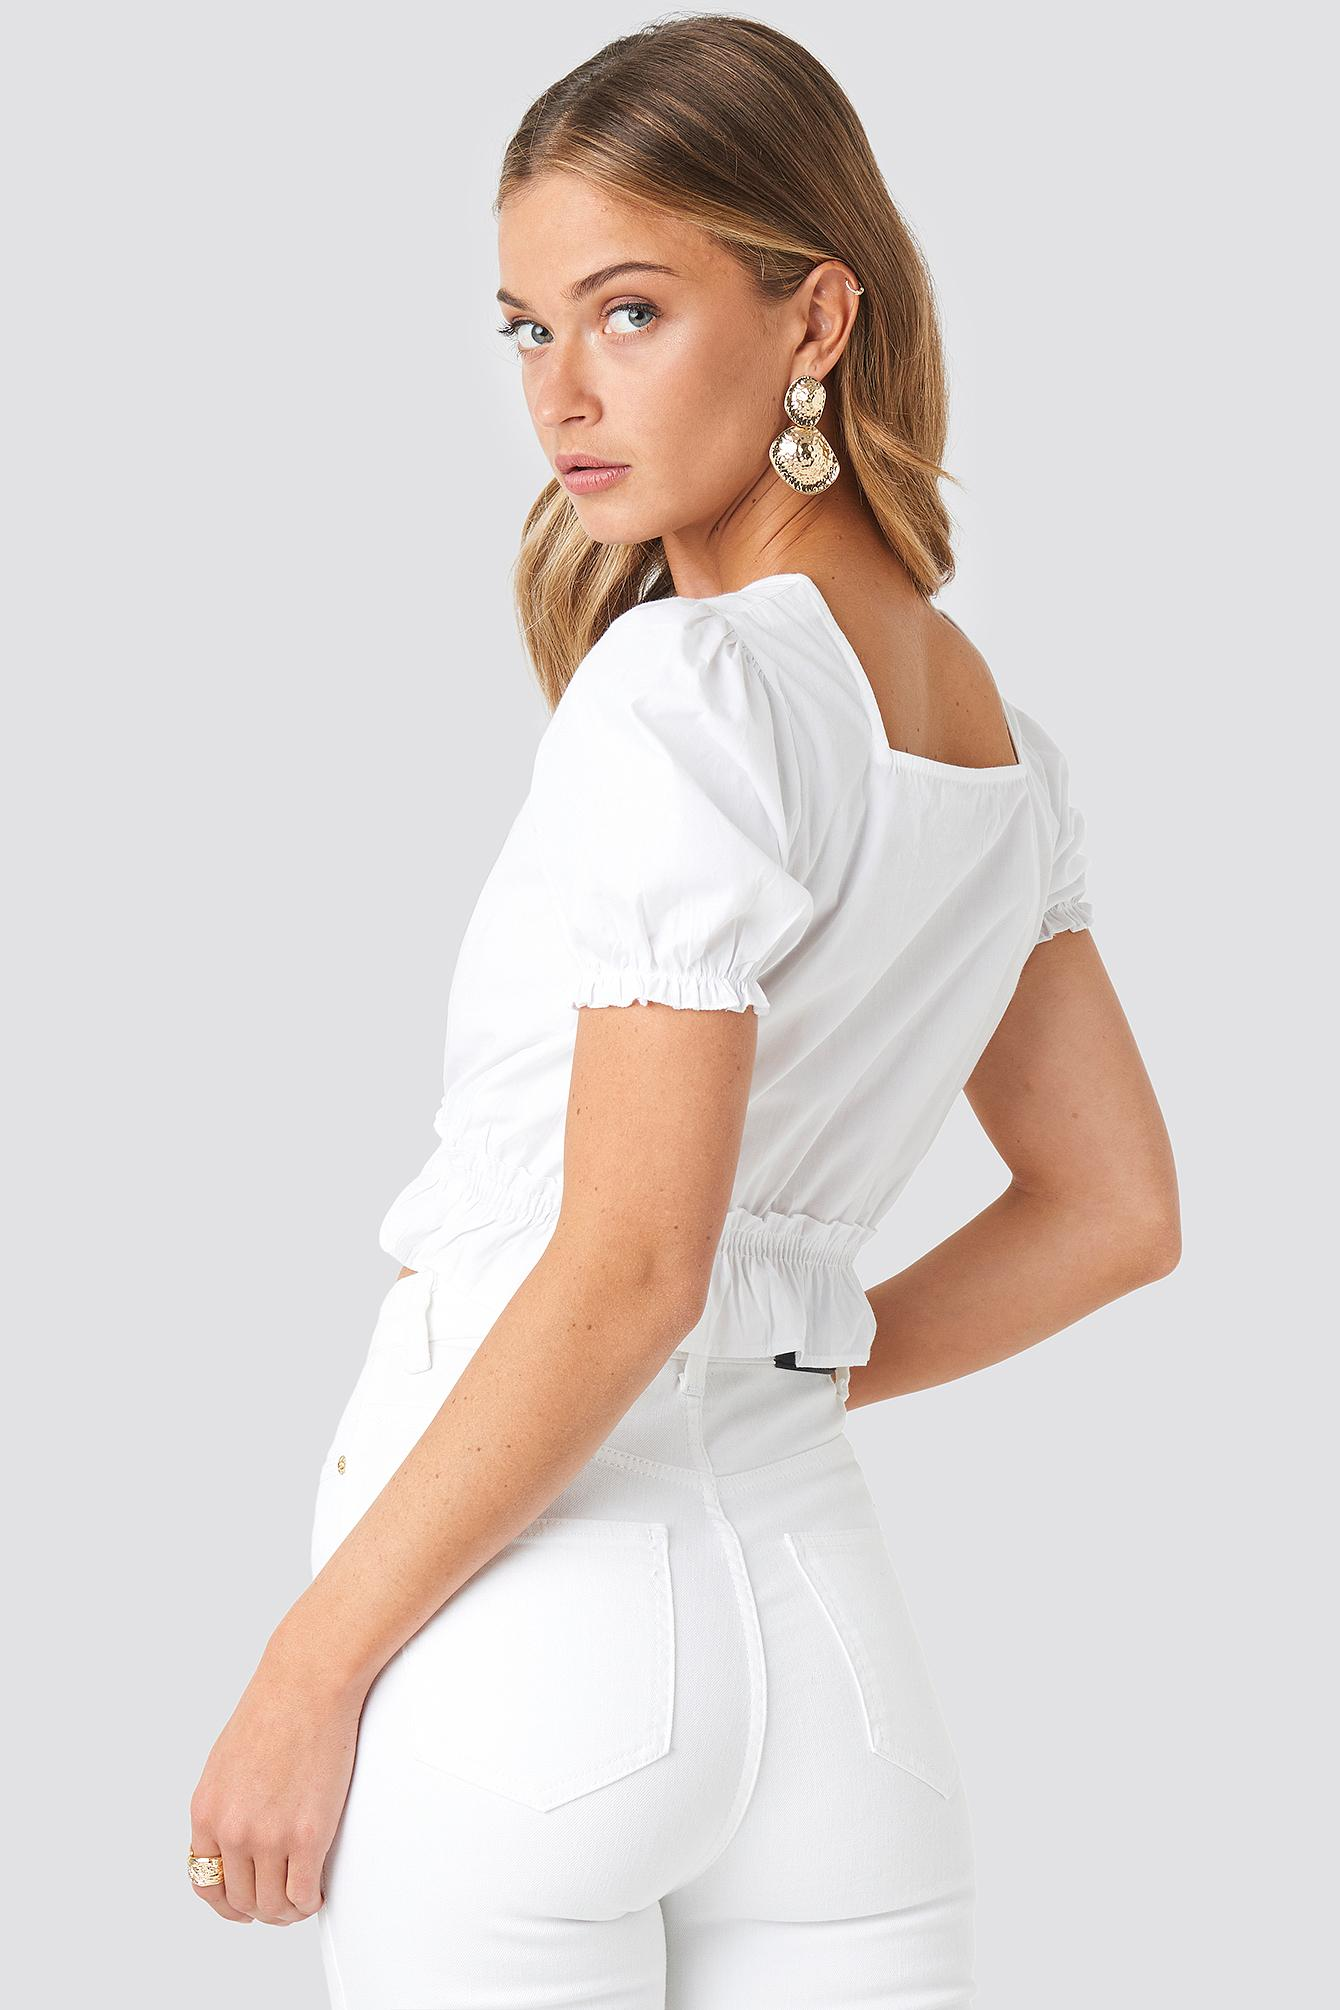 46ce4eb98f5 NA-KD - Cropped Frill Short Sleeve Top White - Lyst. View fullscreen